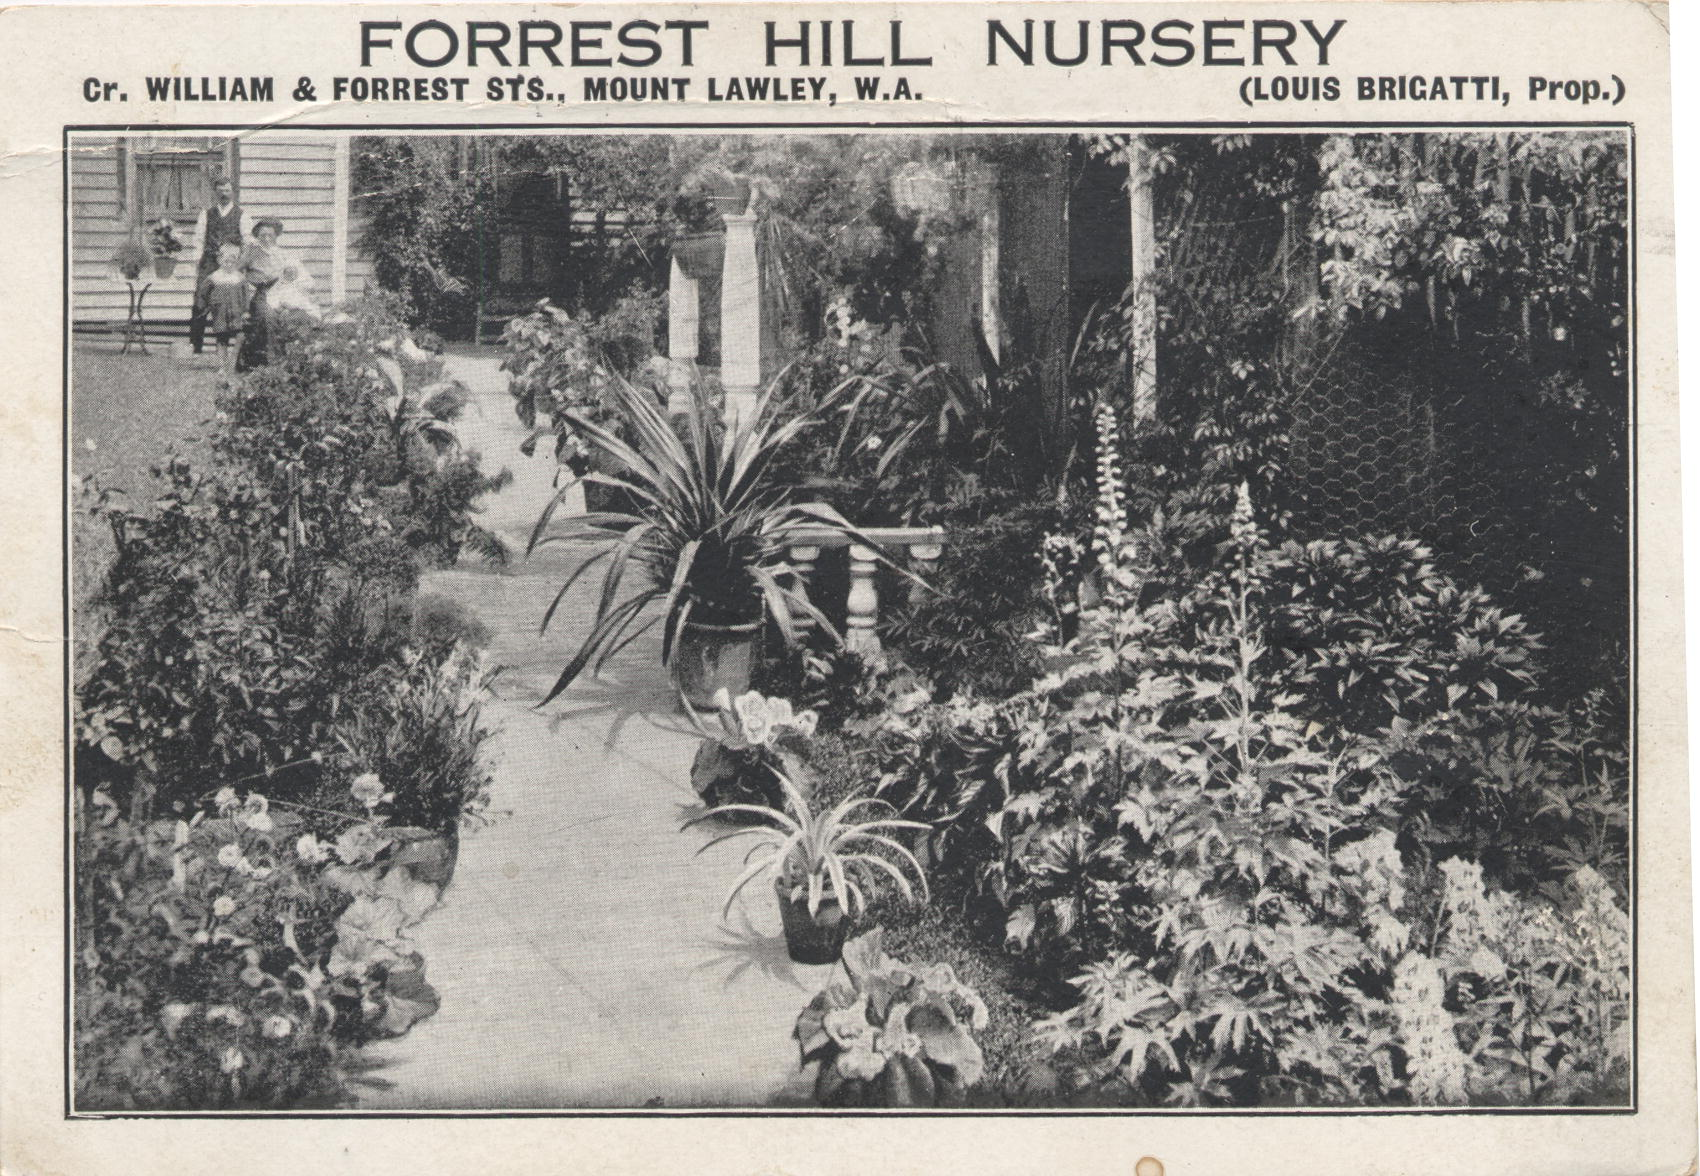 Early Nurseries in the City of Vincent presented by John Viska